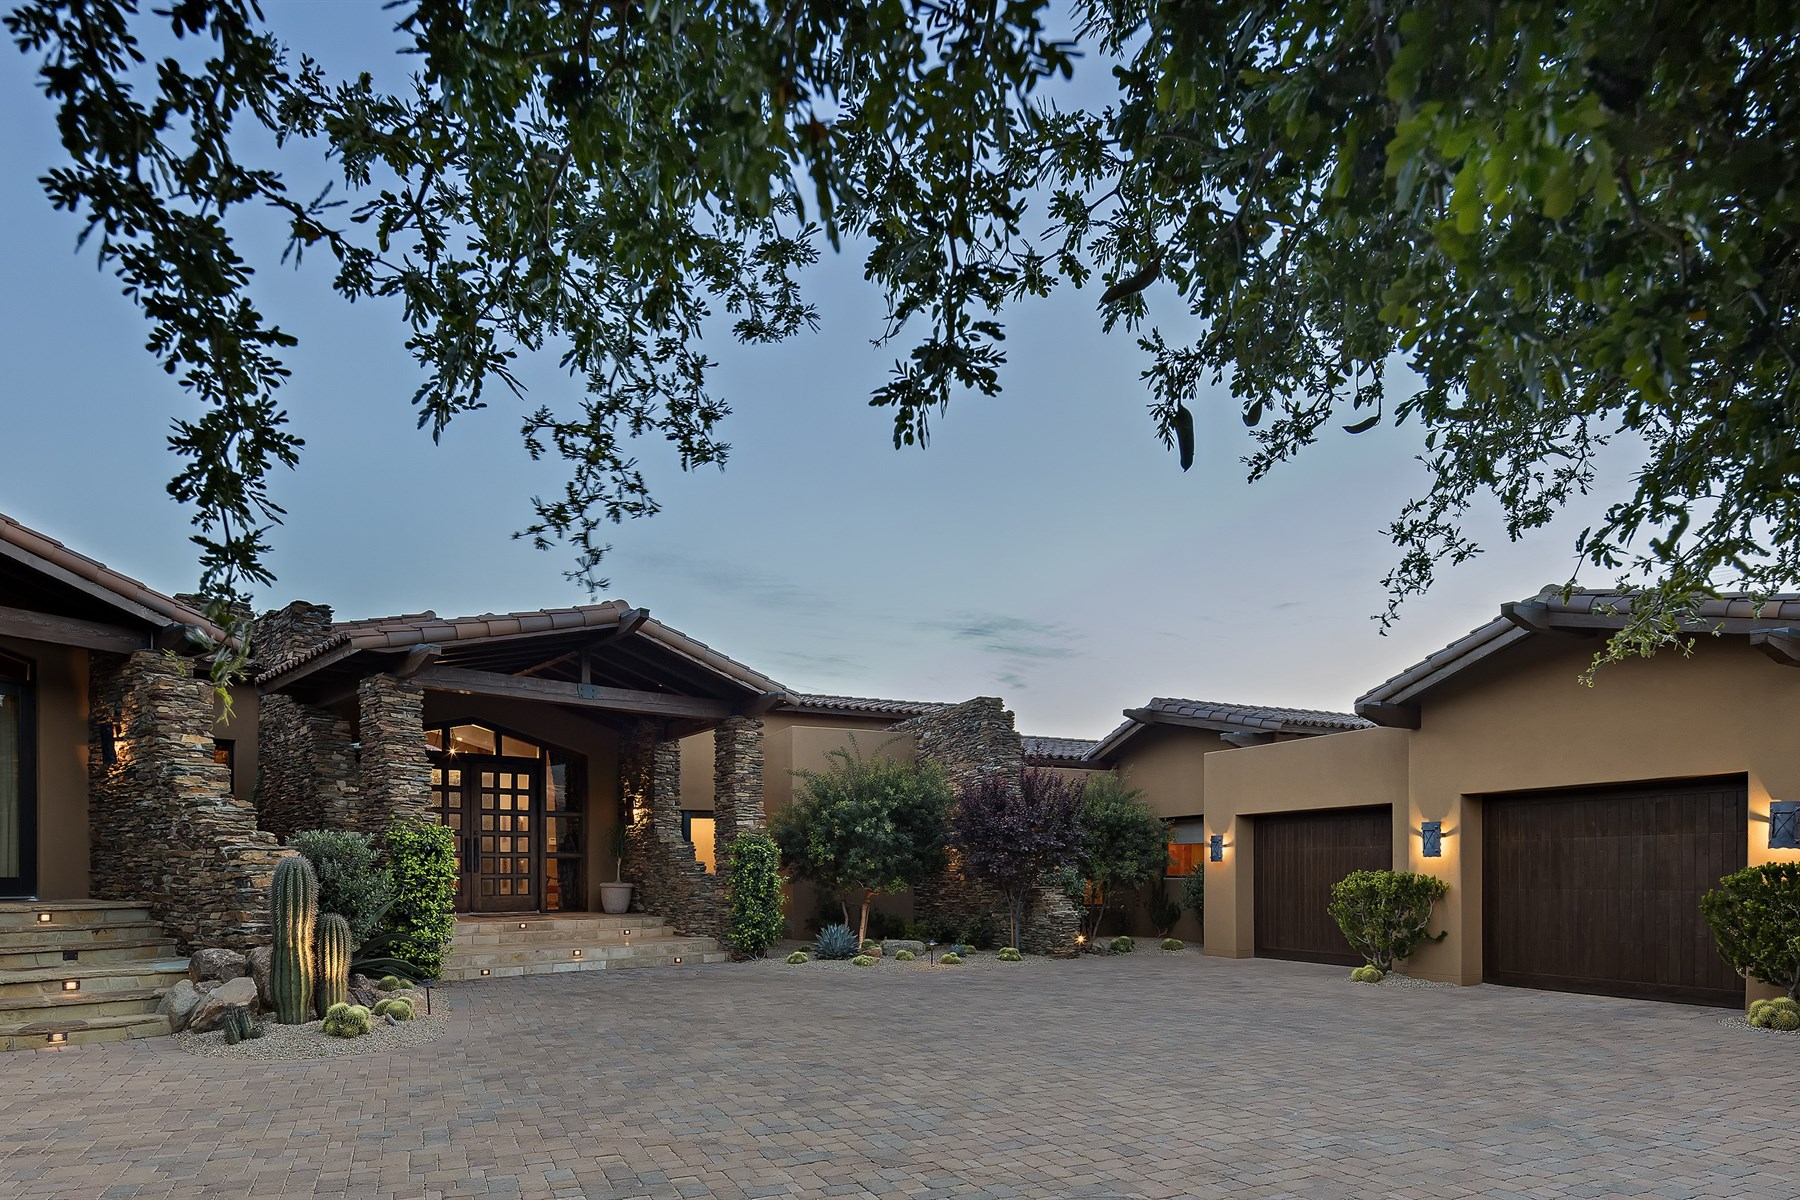 Single Family Home for Sale at Truly original home with the finest of finishes on a premier home site 9793 E Falling Star Dr Scottsdale, Arizona, 85262 United States